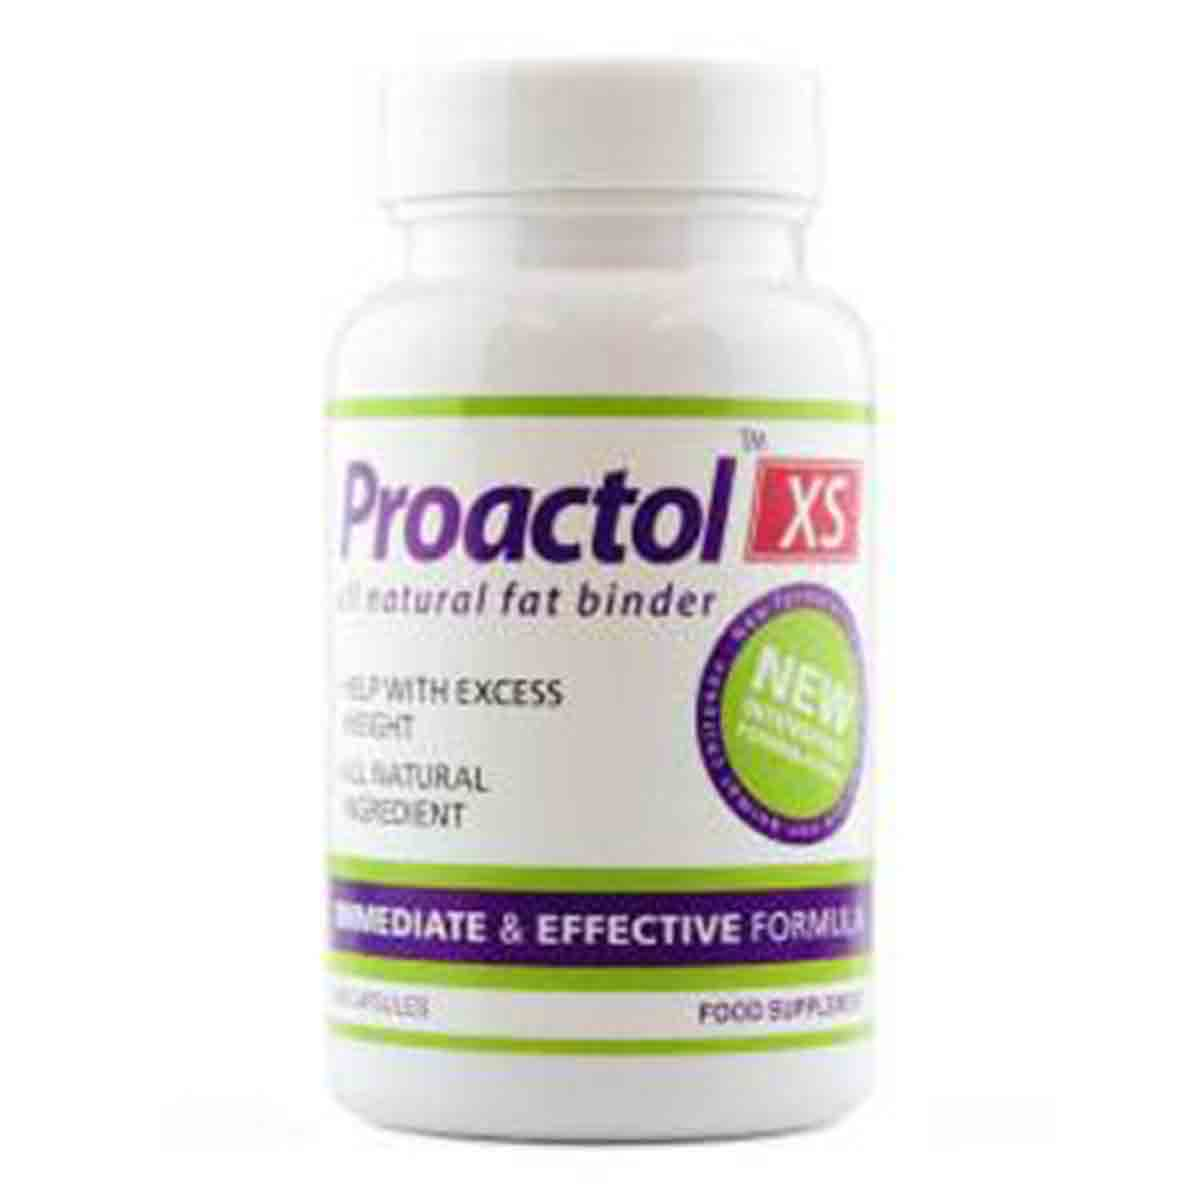 Diet Pills Watchdog | Proactol XS Review, Buy or a Scam?